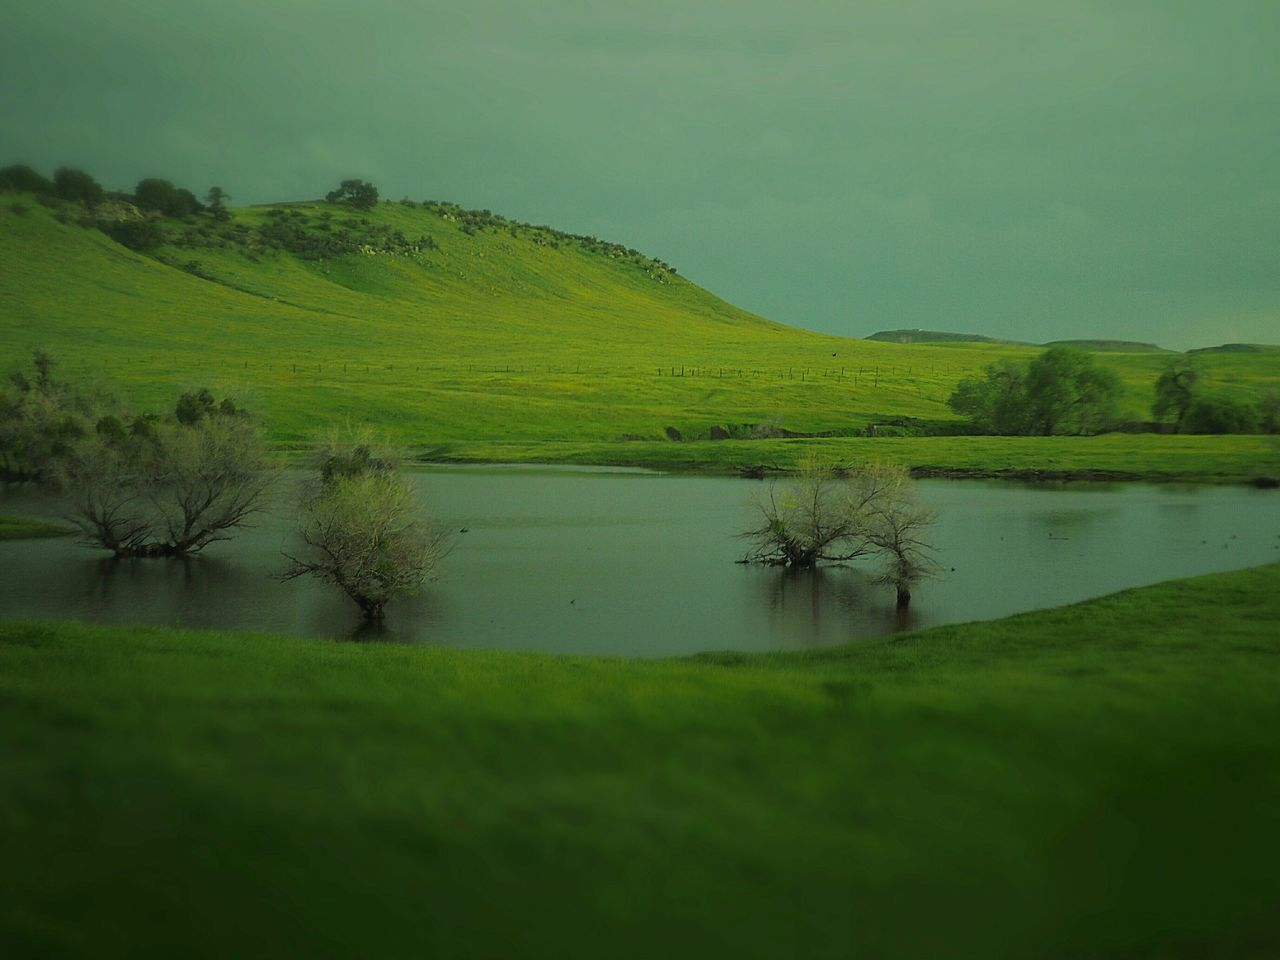 Spring Green Countryside Glamour California Mountainscape via Fotofall